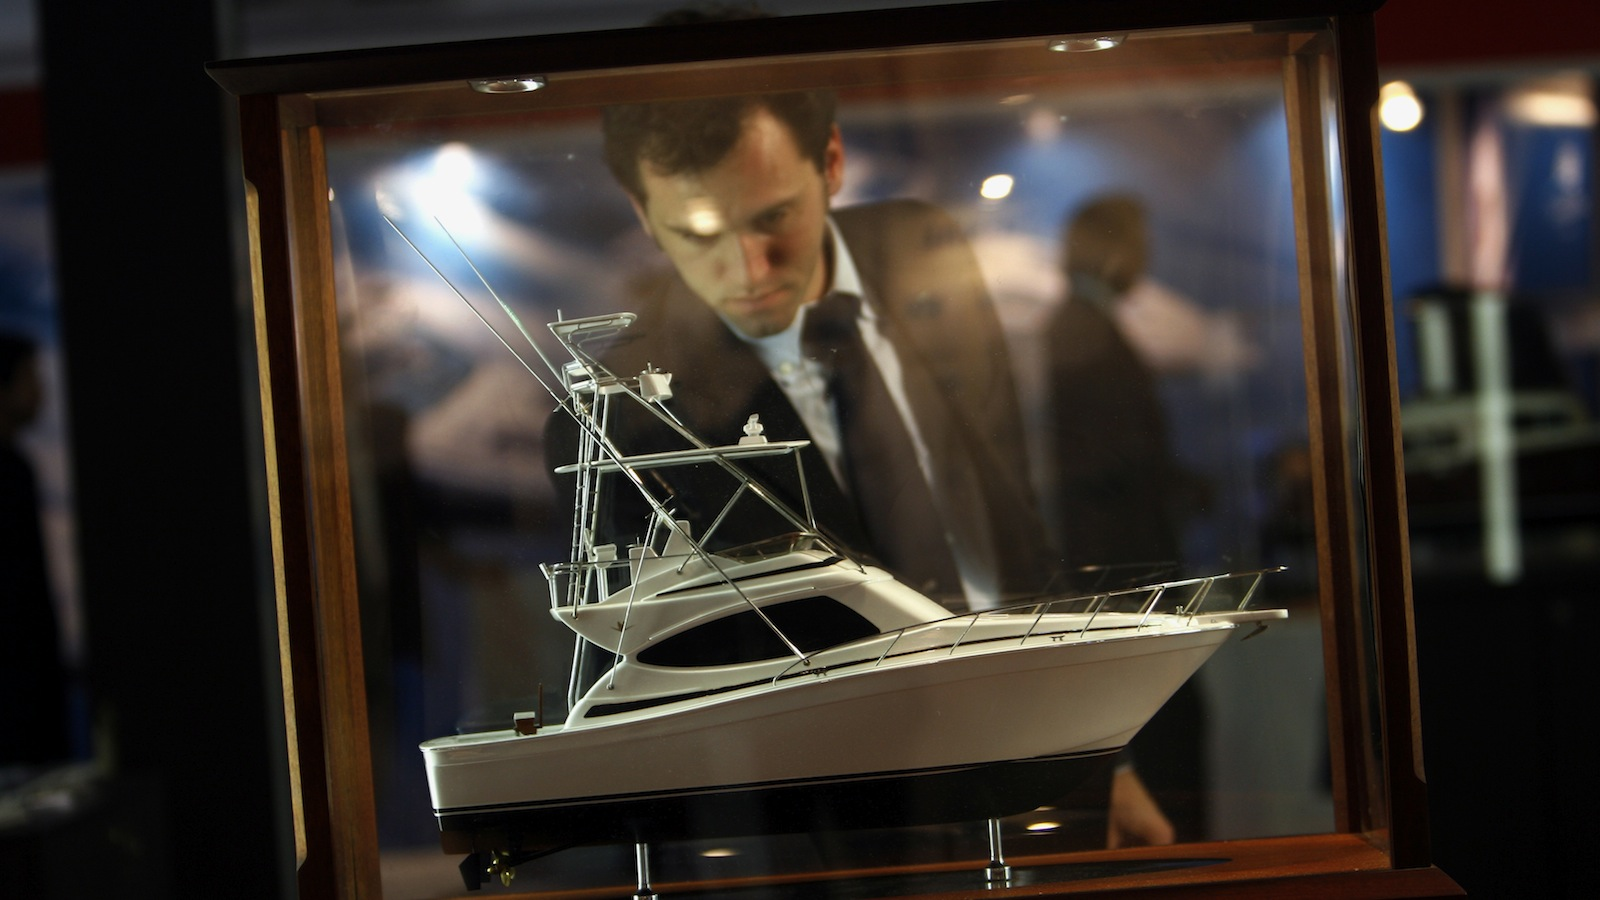 A man stands next to a miniature model of a boat on display at the Samira Mumbai International Boat Show February 28, 2008. The three-day show, which begins on Friday, will showcase international brands from the leisure boating industry. REUTERS/Arko Datta